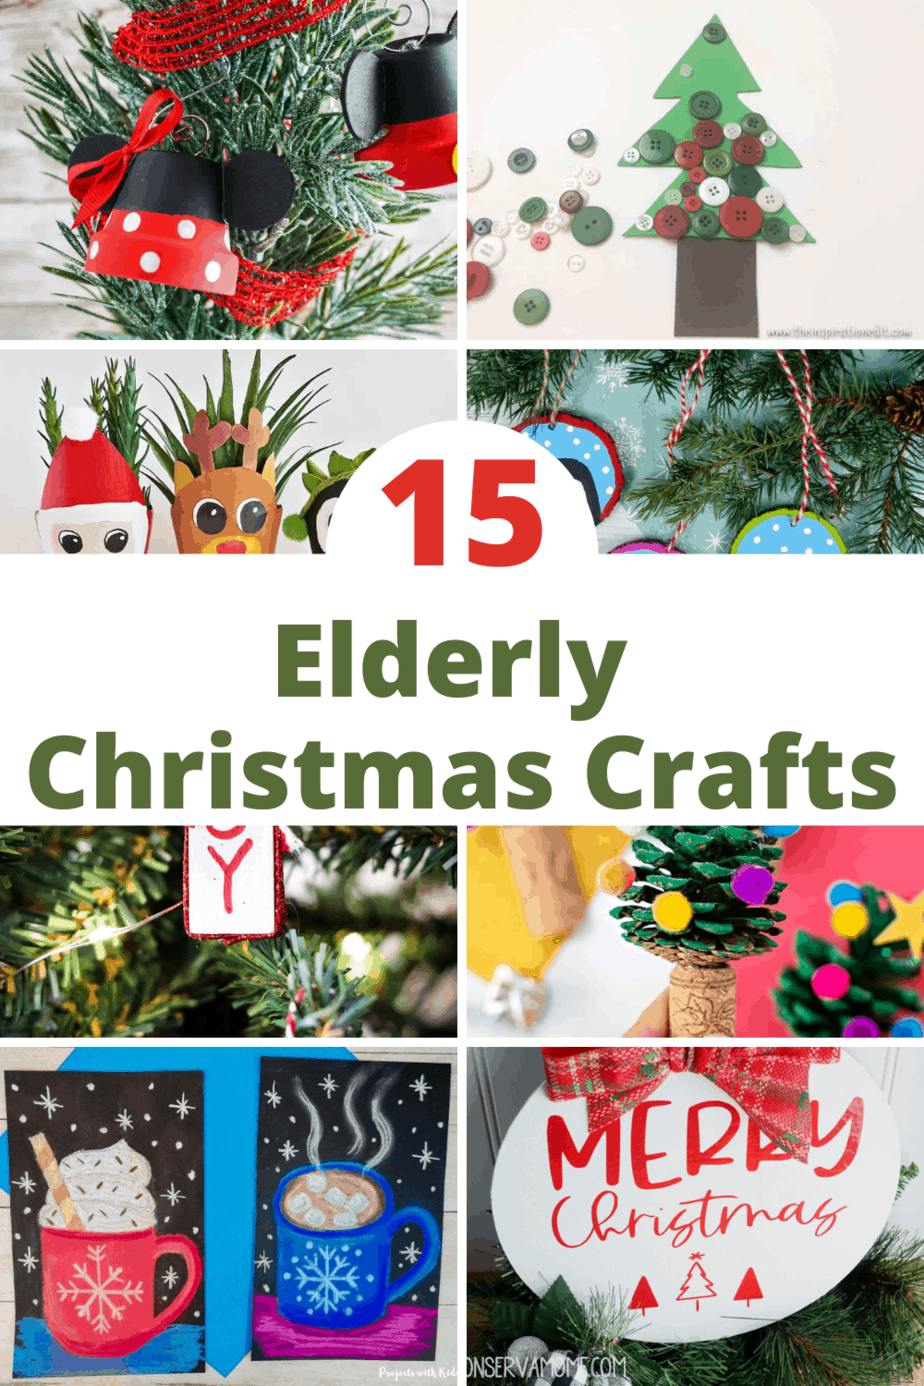 15 pretty and easy to make Christmas crafts for seniors